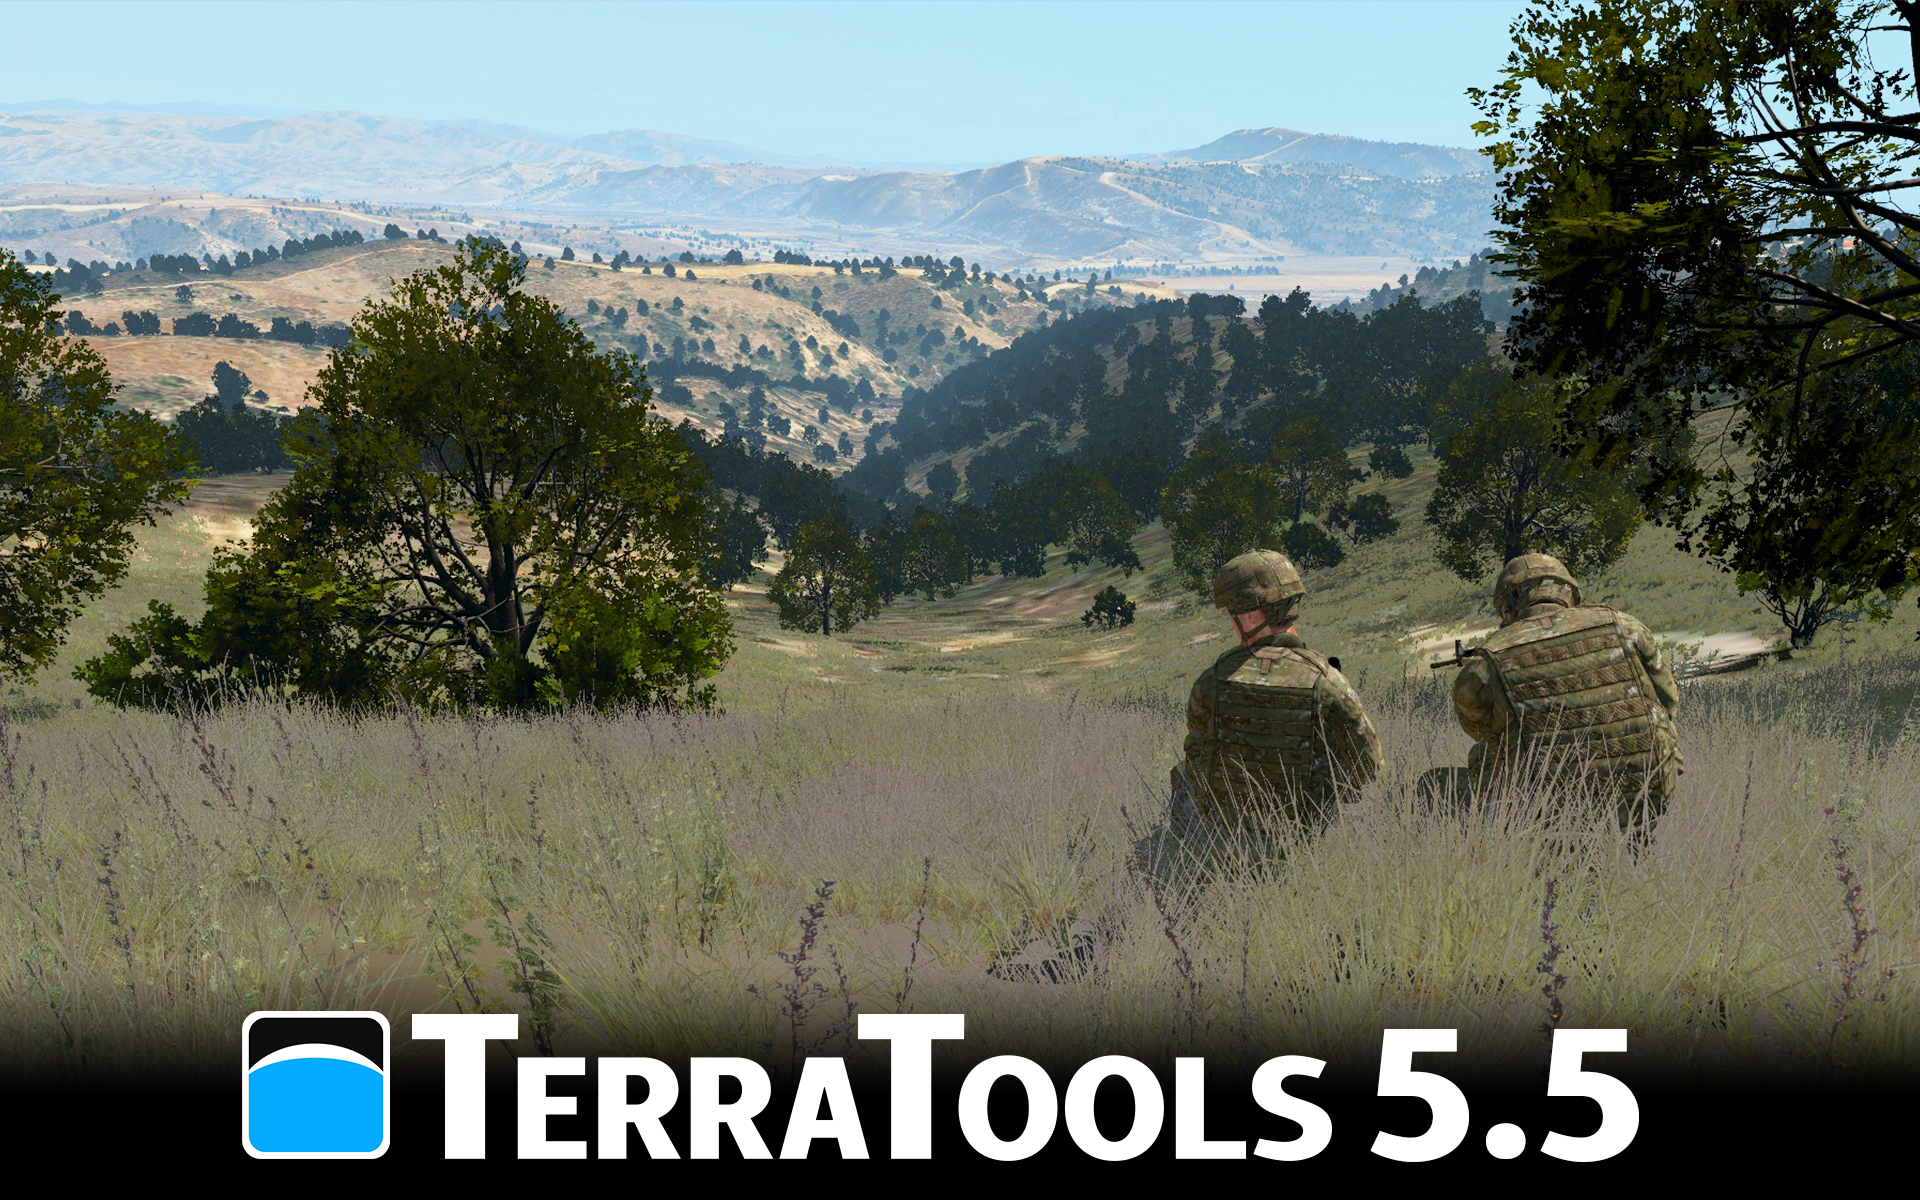 Terrain generated in TerraTools as viewed in VBS3